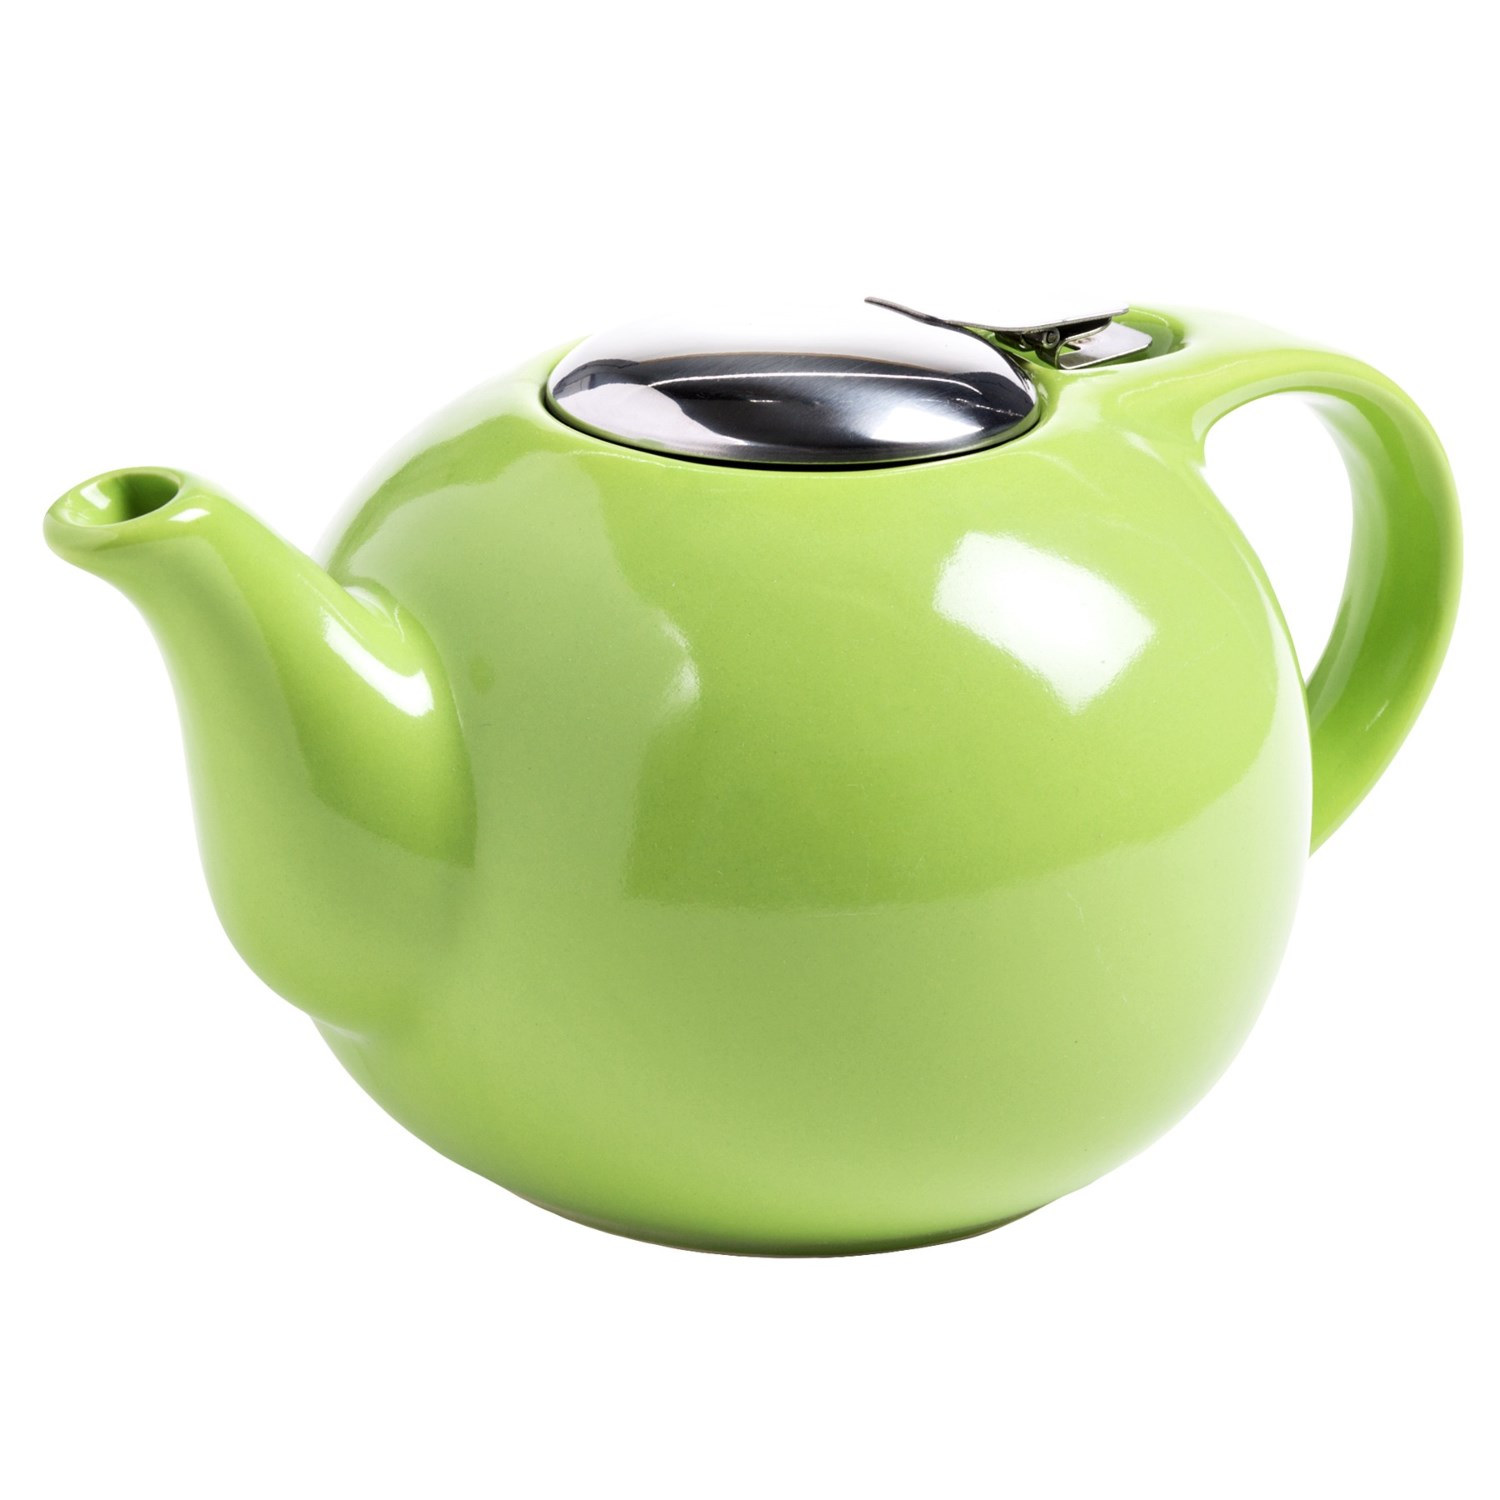 Creative home ceramic teapot with infuser 48 save 39 - Tea pots with infuser ...